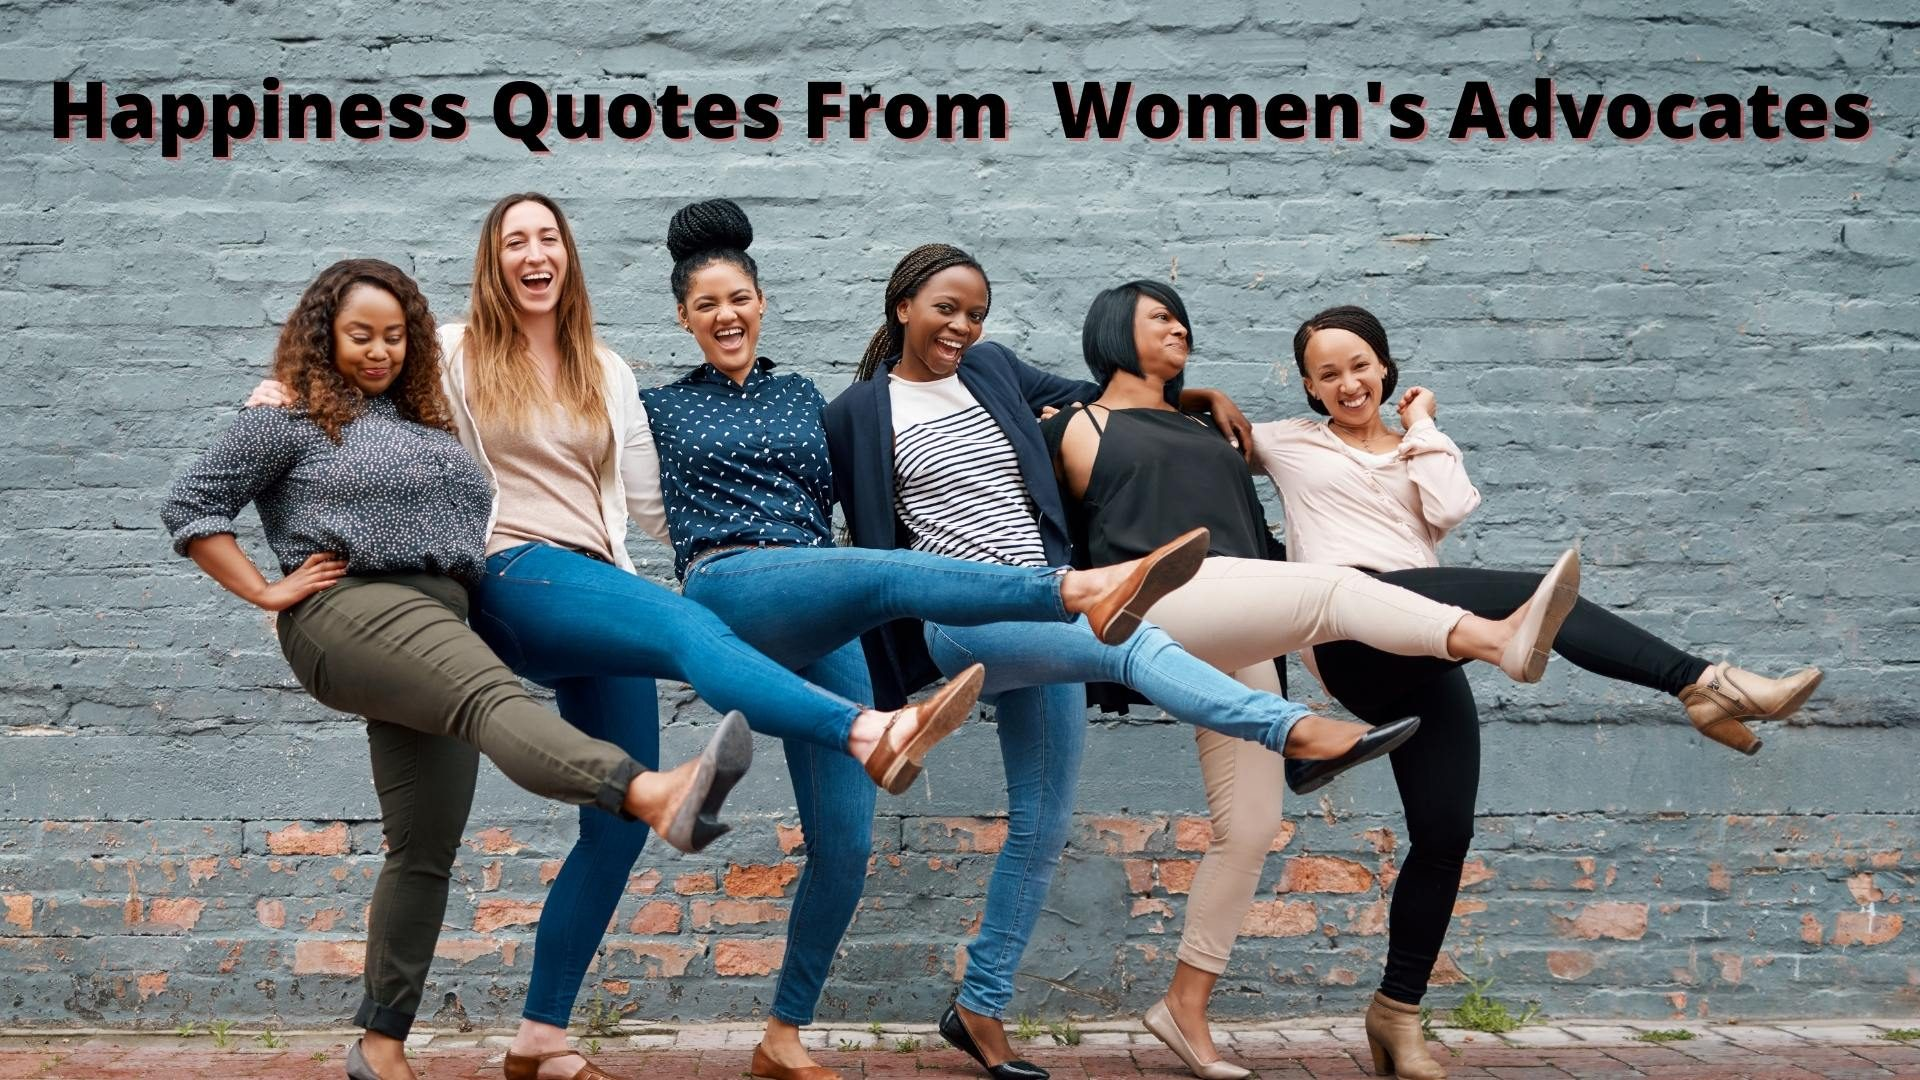 short happiness quotes from women's advocates